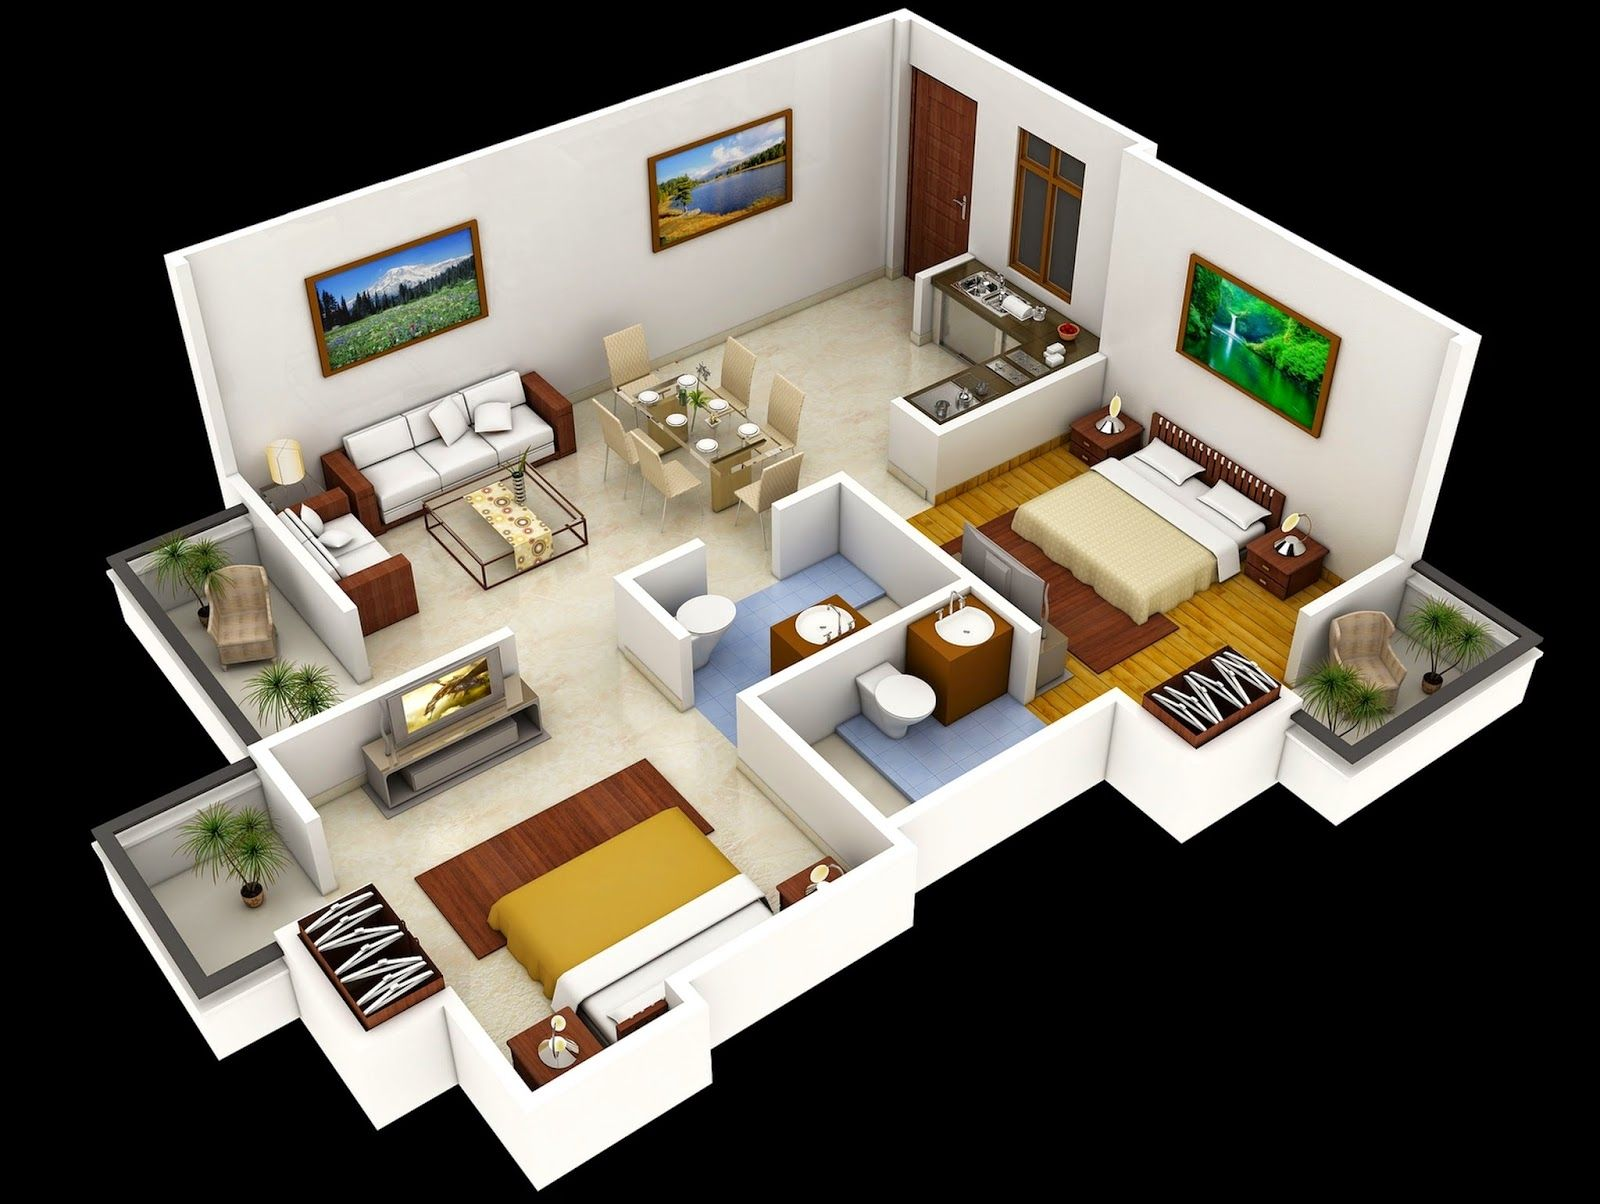 Architecture two bedroom house designs small modern plans  also pinterest rh